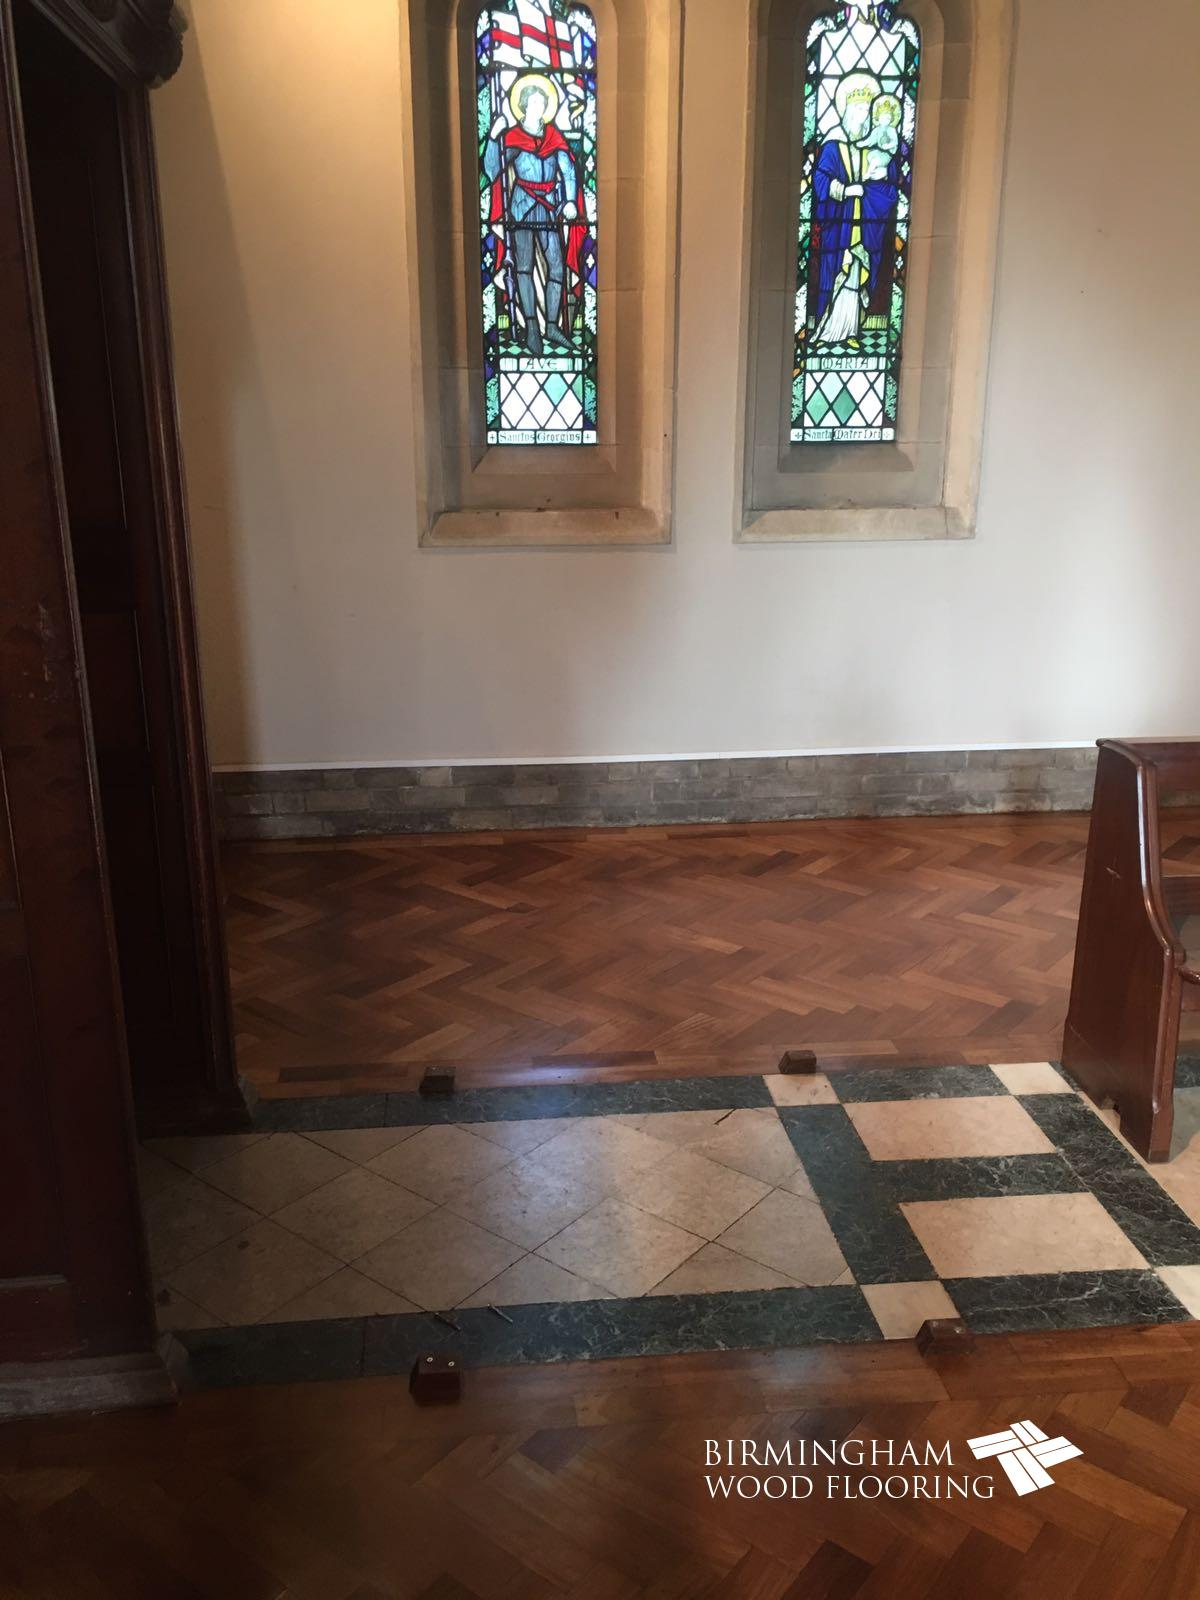 Church Wood Floor Restoration, Olton Friary, Solihull, Birmingham